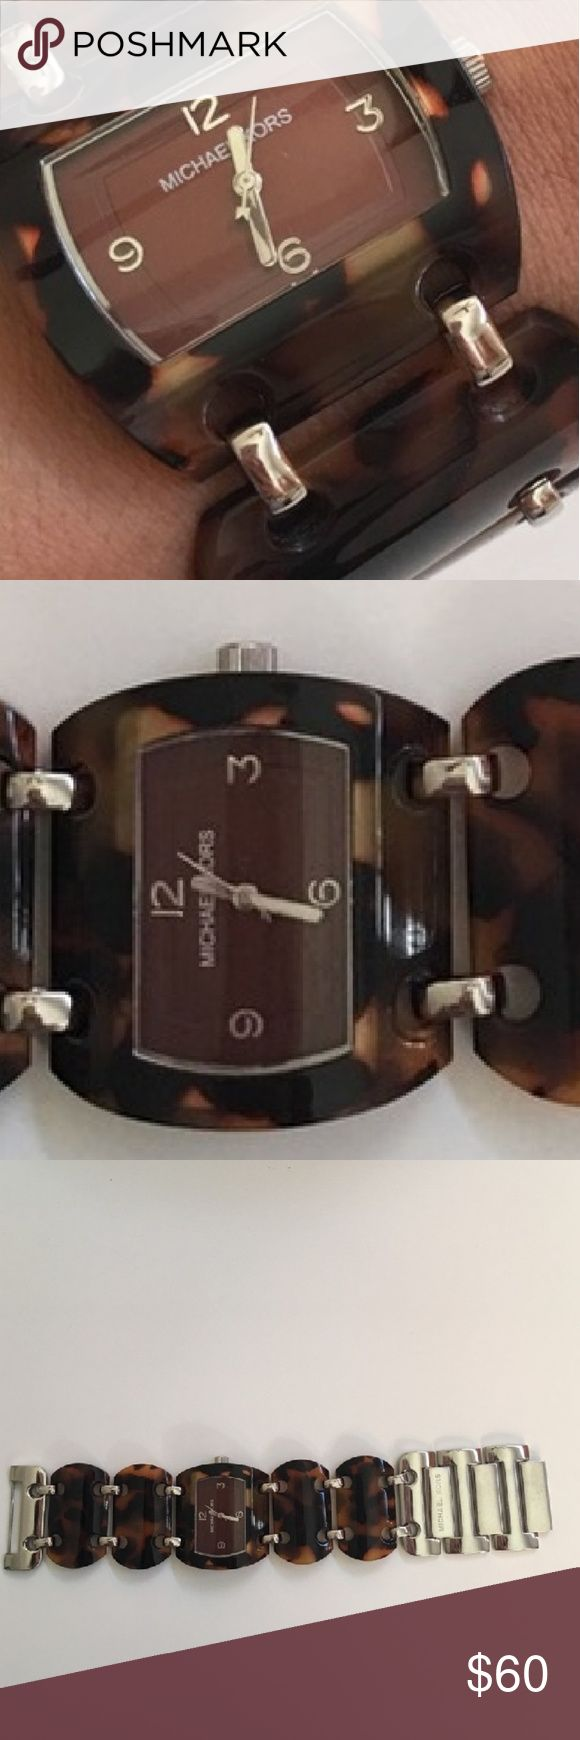 Authentic Michael Kors Tortoise Watch Authentic Michael Kors Tortoise Watch.  Very well taken care of hardly worn beautiful tortoise watch. Goes well with any outfit, dressy or not. Excellent condition. Michael Kors Accessories Watches